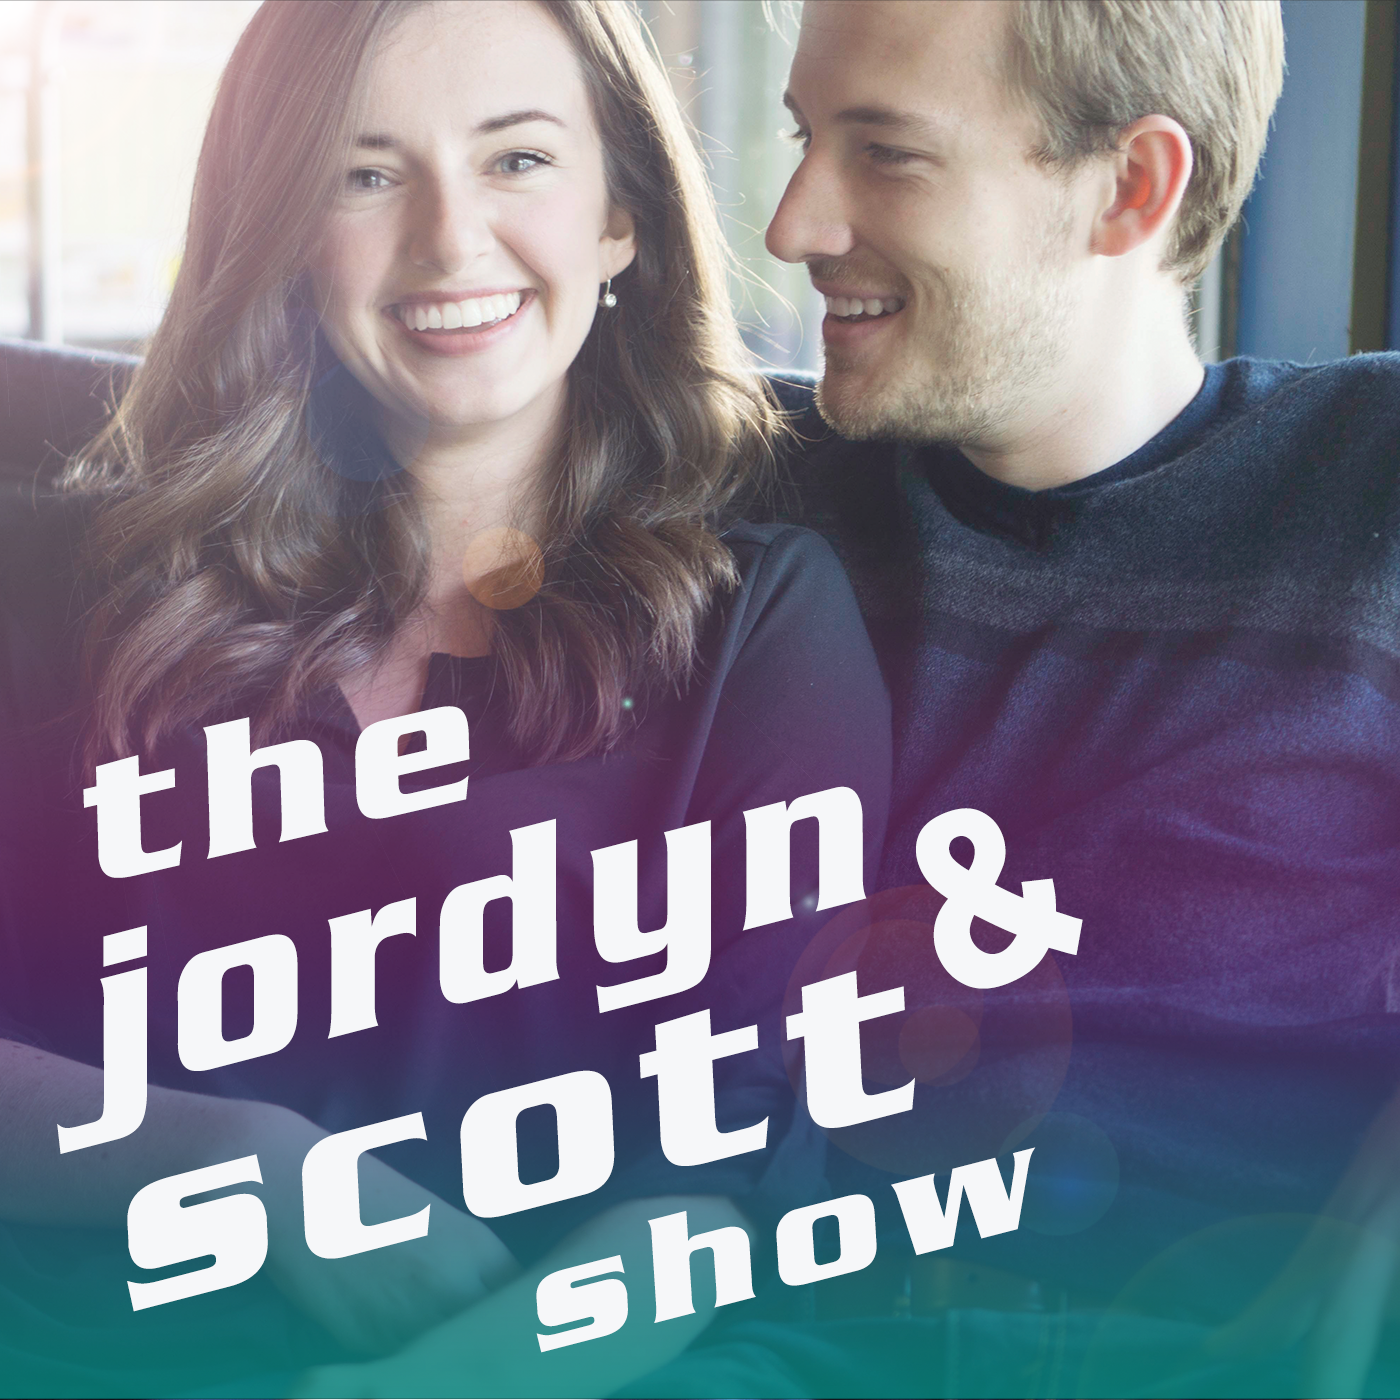 This *was* The Jordyn & Scott Show. My husband (Scott) and I started this podcastlast June 2017.We talked about mindfulness in money, marriage, relationships, and other areas of our life.Our first season ended September 2017. We gave ourselves a break to move cities and settle into our new home. -